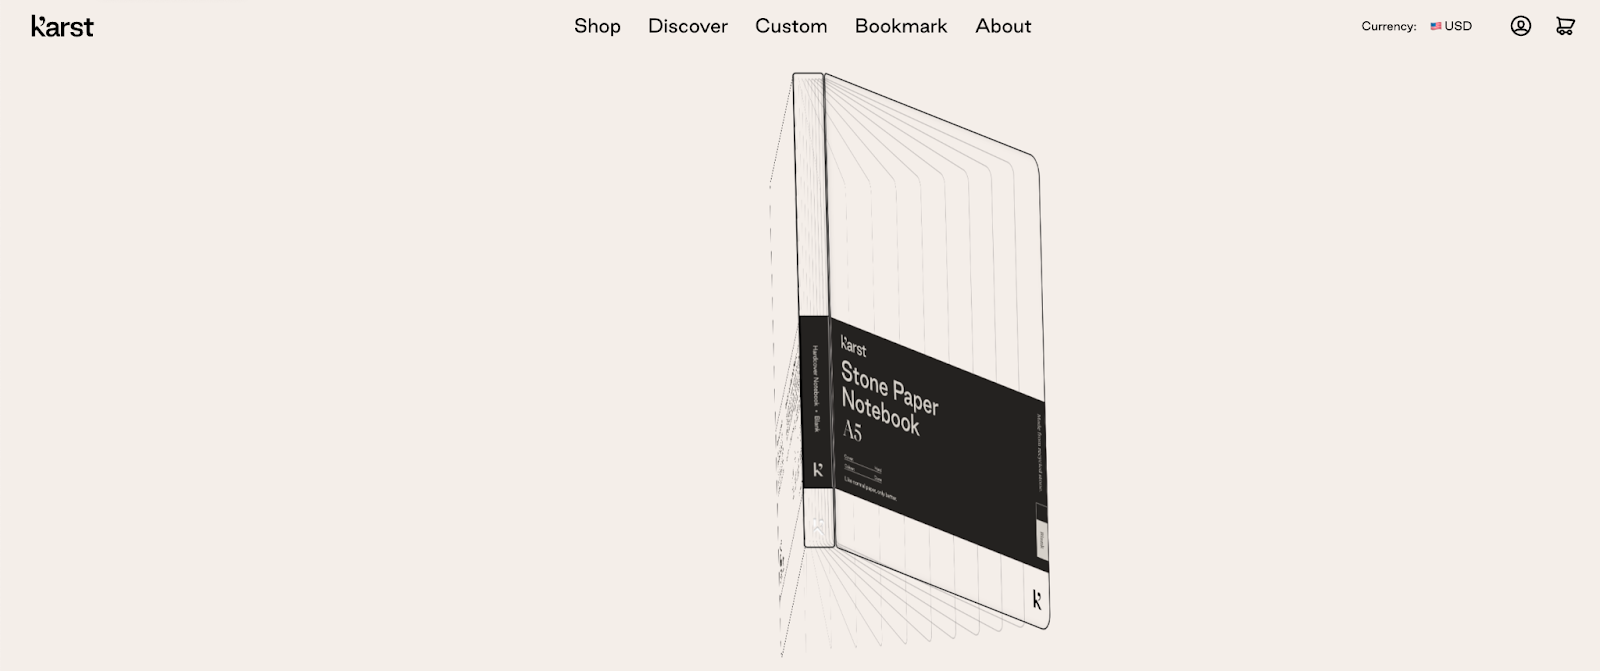 Karst: The animation evolves from line art into the real product in two seconds.